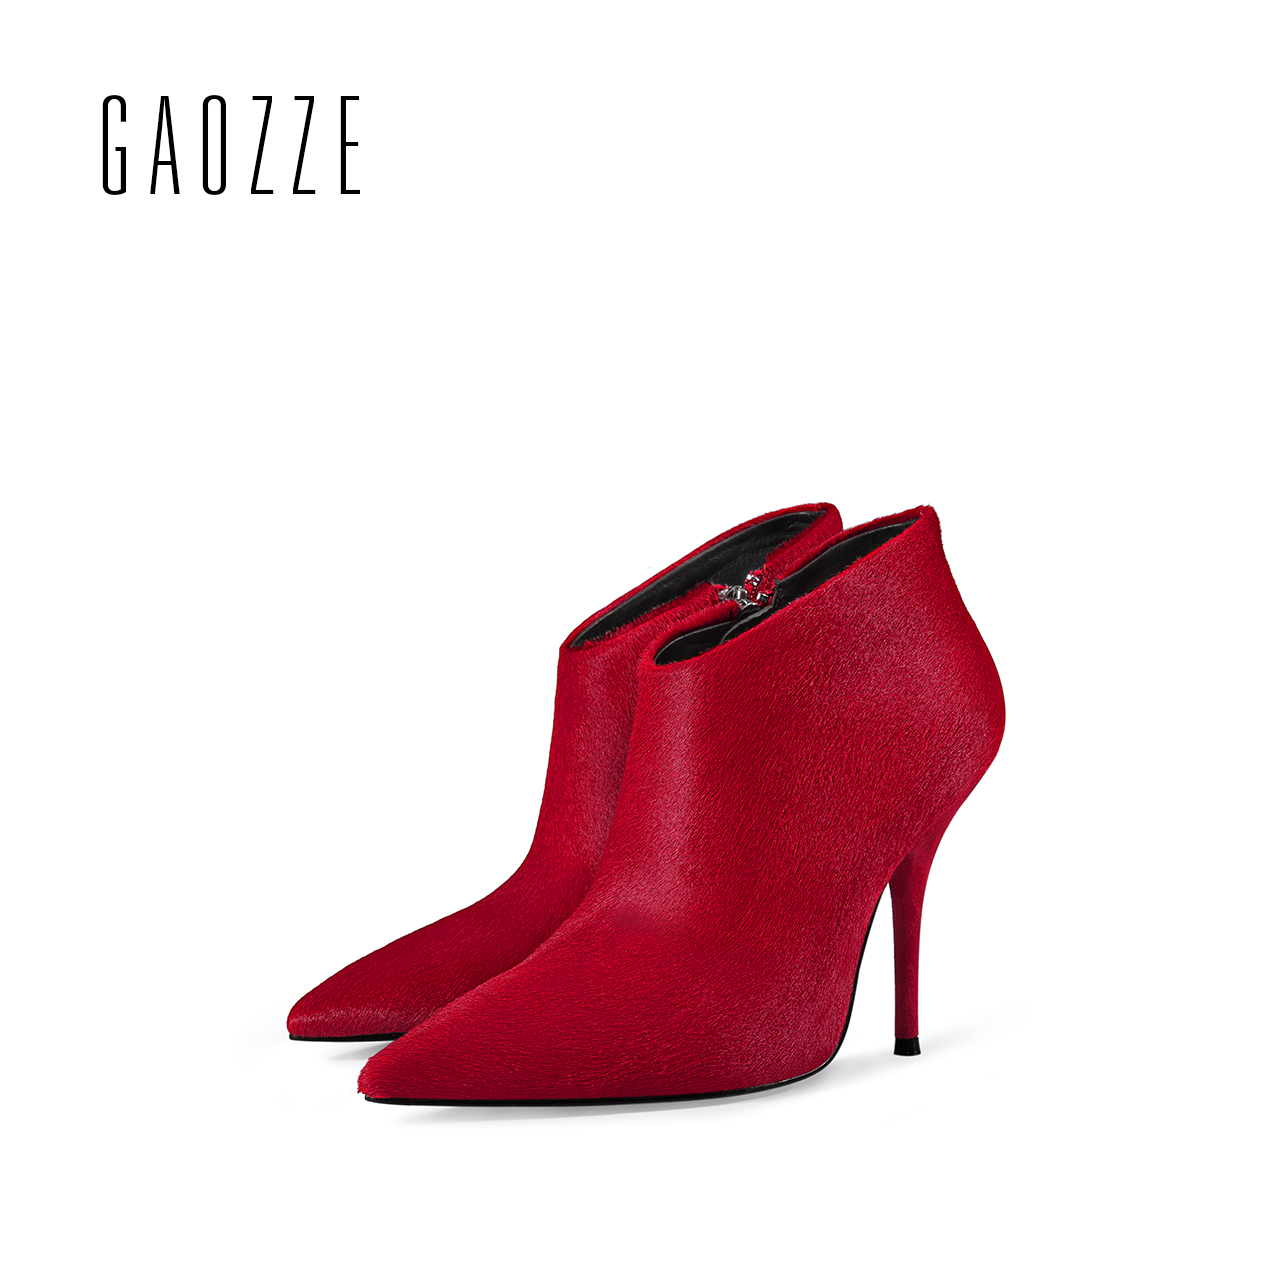 GAOZZE autumn ankle boots for women 2017 new Sexy thin high-heeled boots women side zipper fashion pointed toe shoes red boots gaozze autumn ankle boots for women 2017 new sexy thin high heeled boots women side zipper fashion pointed toe shoes red boots